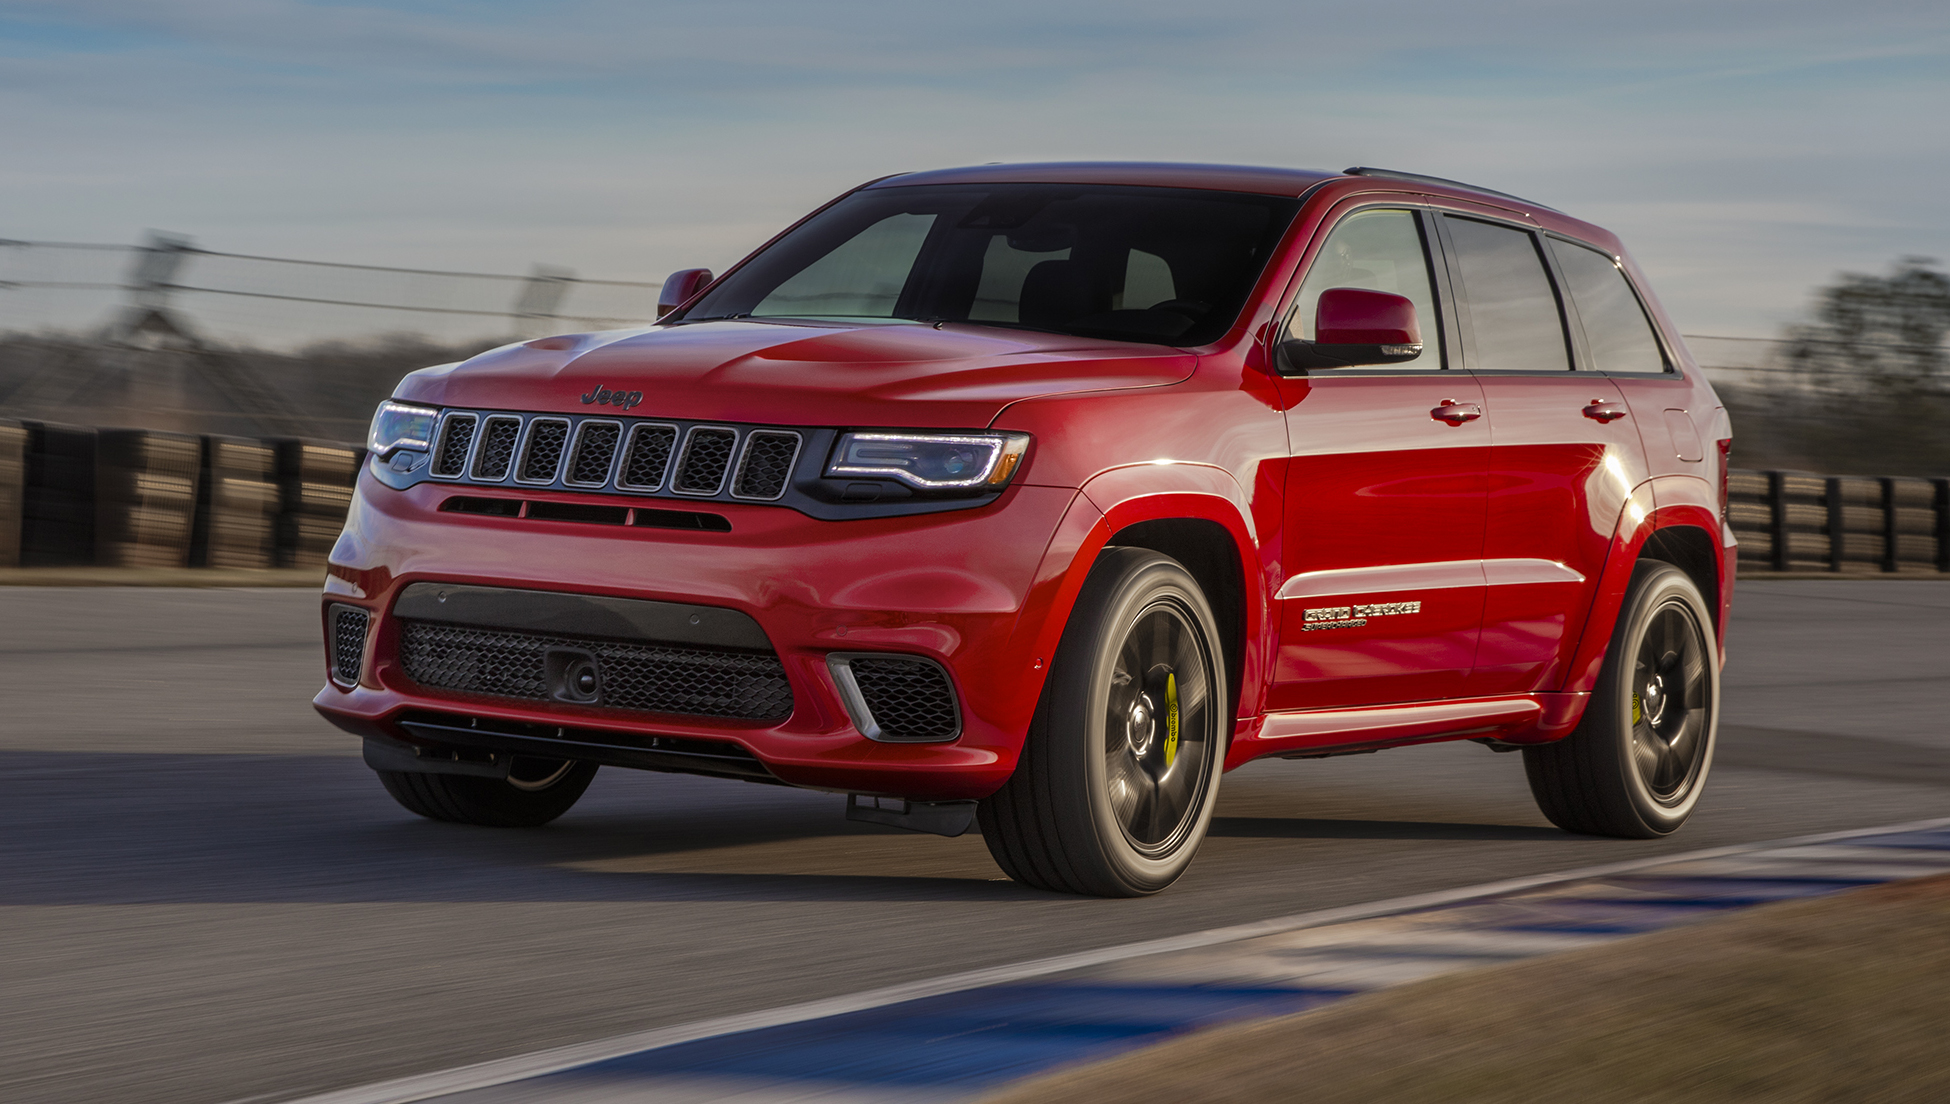 2018 Jeep Grand Cherokee >> 2017 Jeep Grand Cherokee Trackhawk revealed, Australian arm keen - photos | CarAdvice